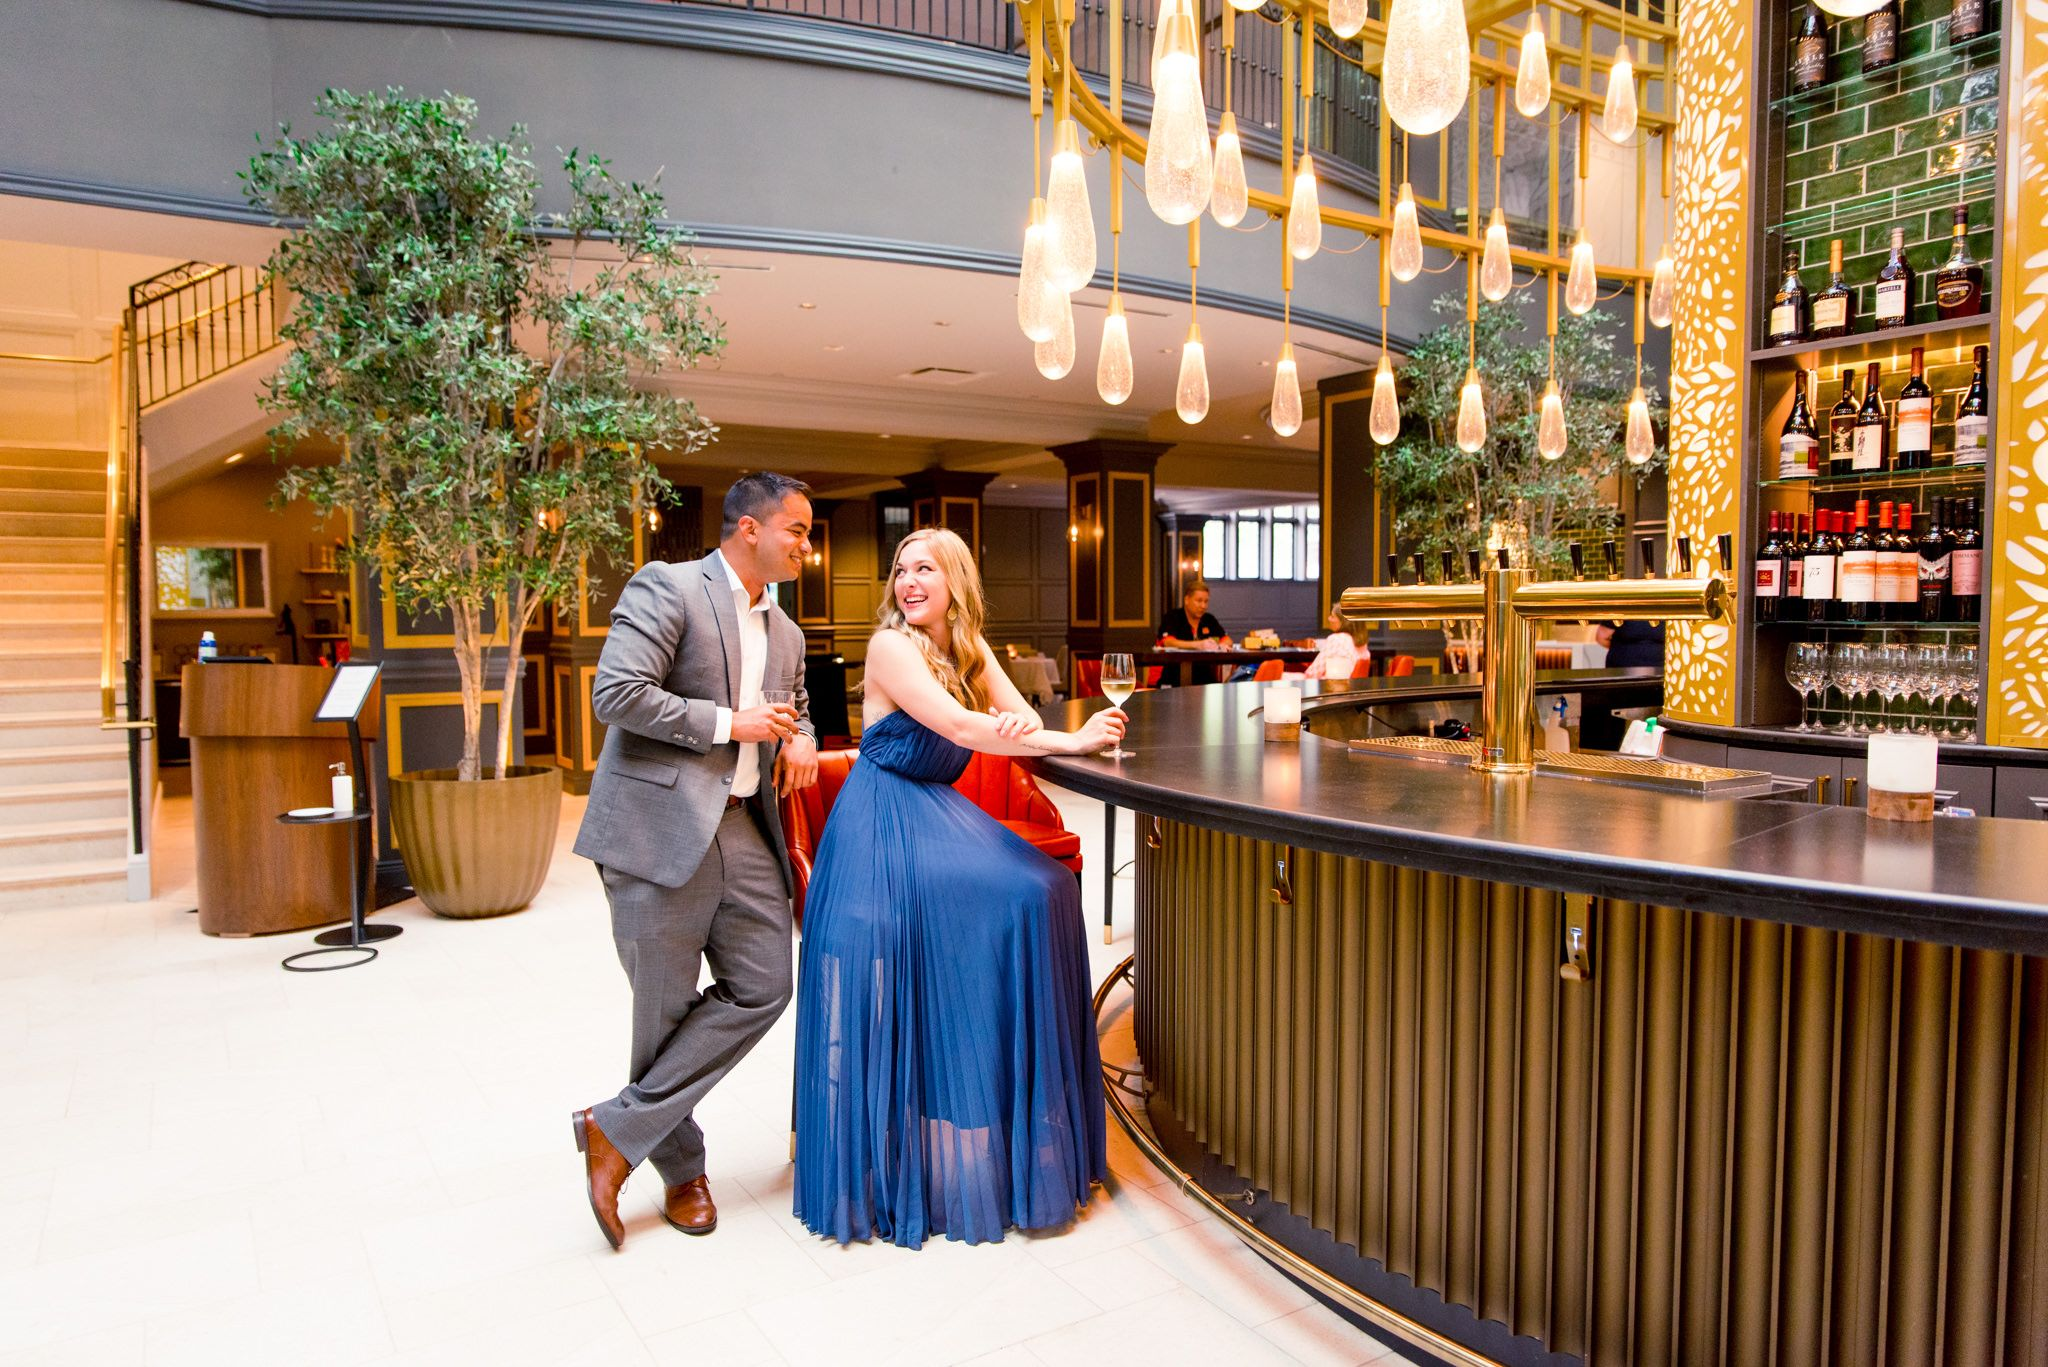 blonde woman in blue dress sits at the bar at the Lytle Park Hotel, laughing with fiance in grey suit standing behind